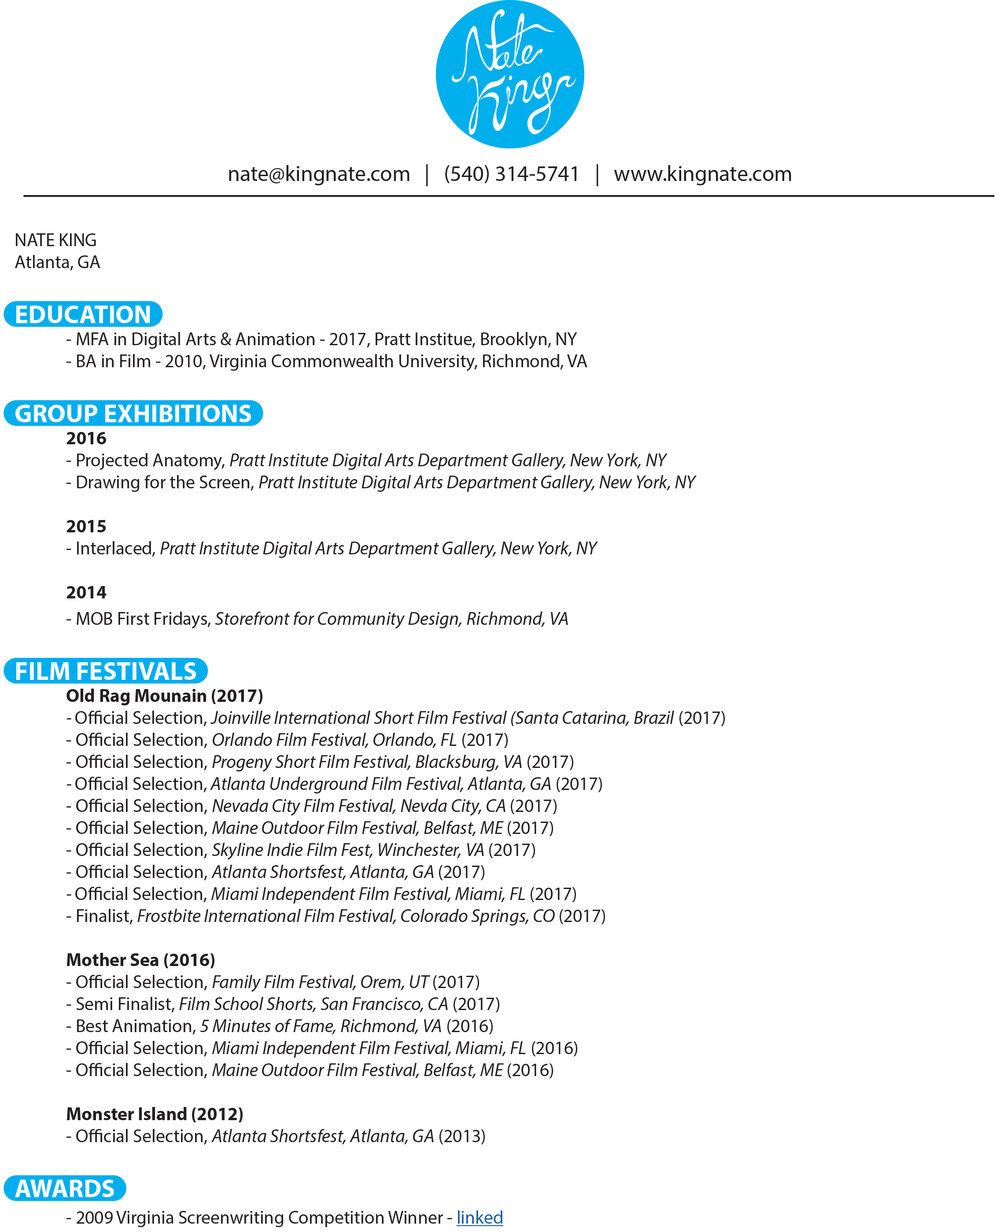 NATE KING CV Jan 2018.jpg